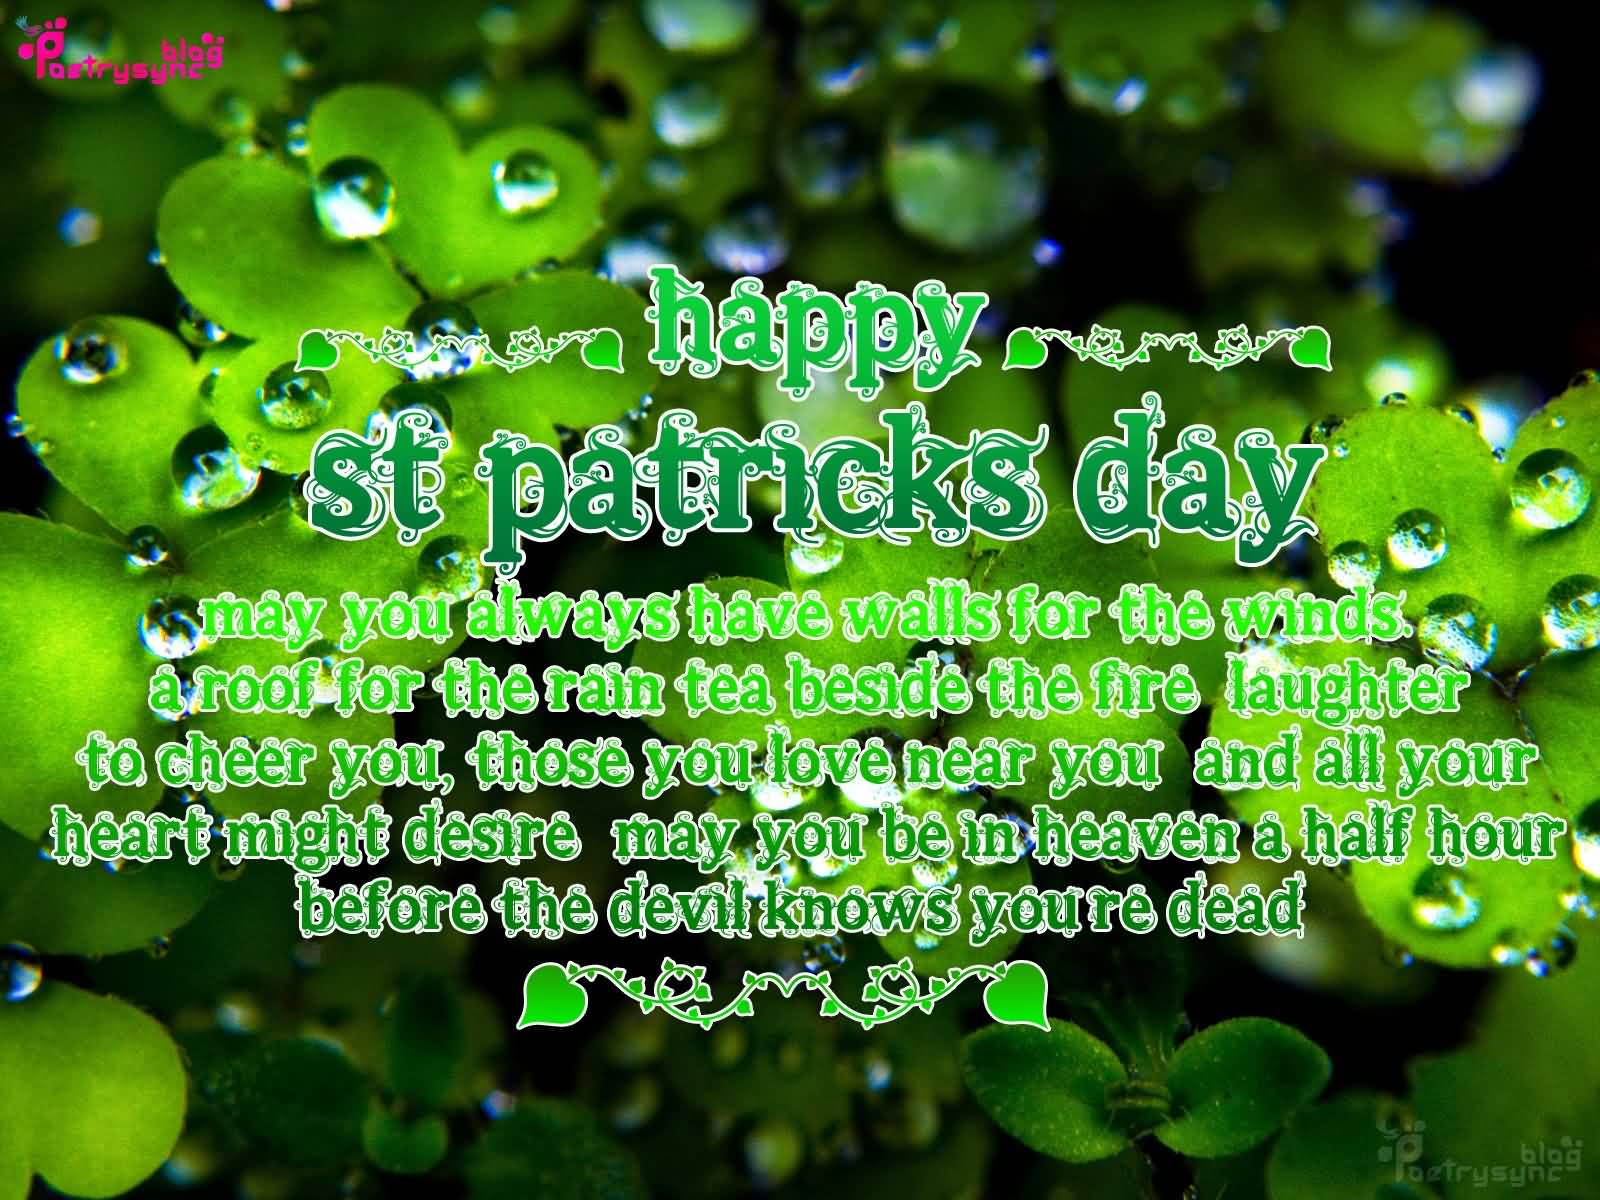 Happy Saint Patrick's Day May You Always Have Walls For The Winds A Roof For The Rain Tea Beside The Fire Laughter To Cheer You Those You Love Near You And All Your Heart Might Desire